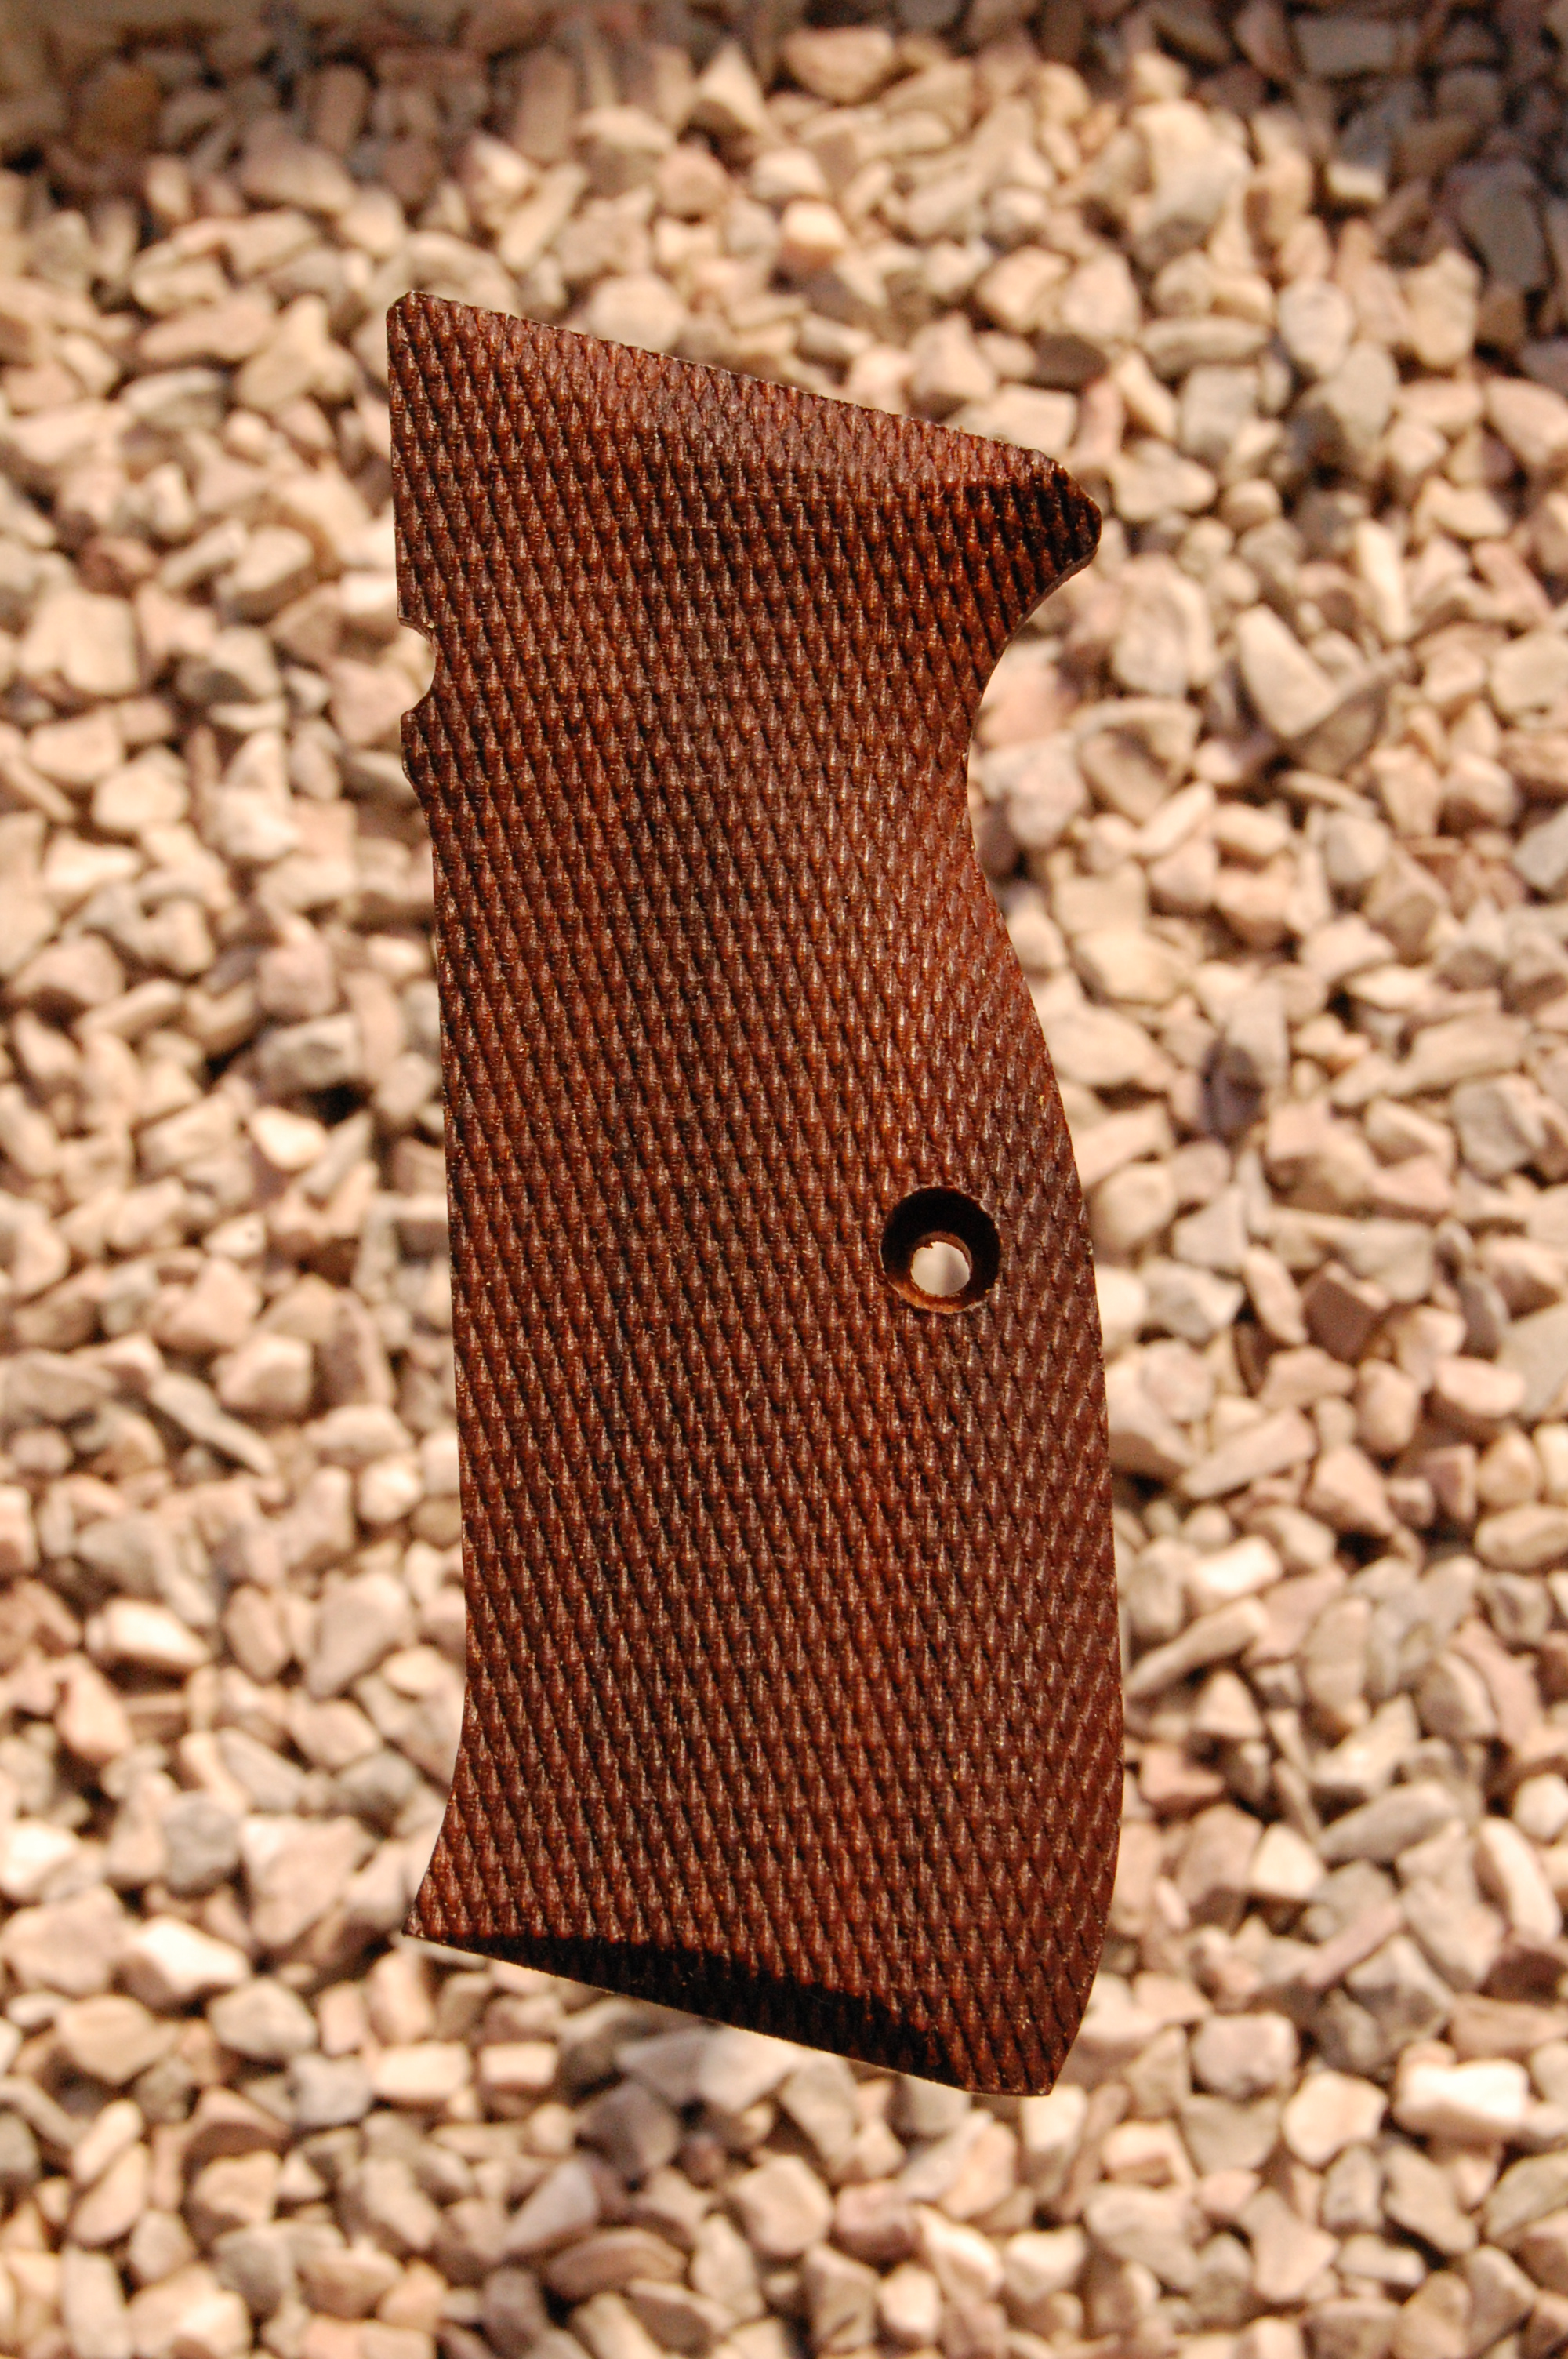 CZ 75 type 5 grips (fully checkered) - full size